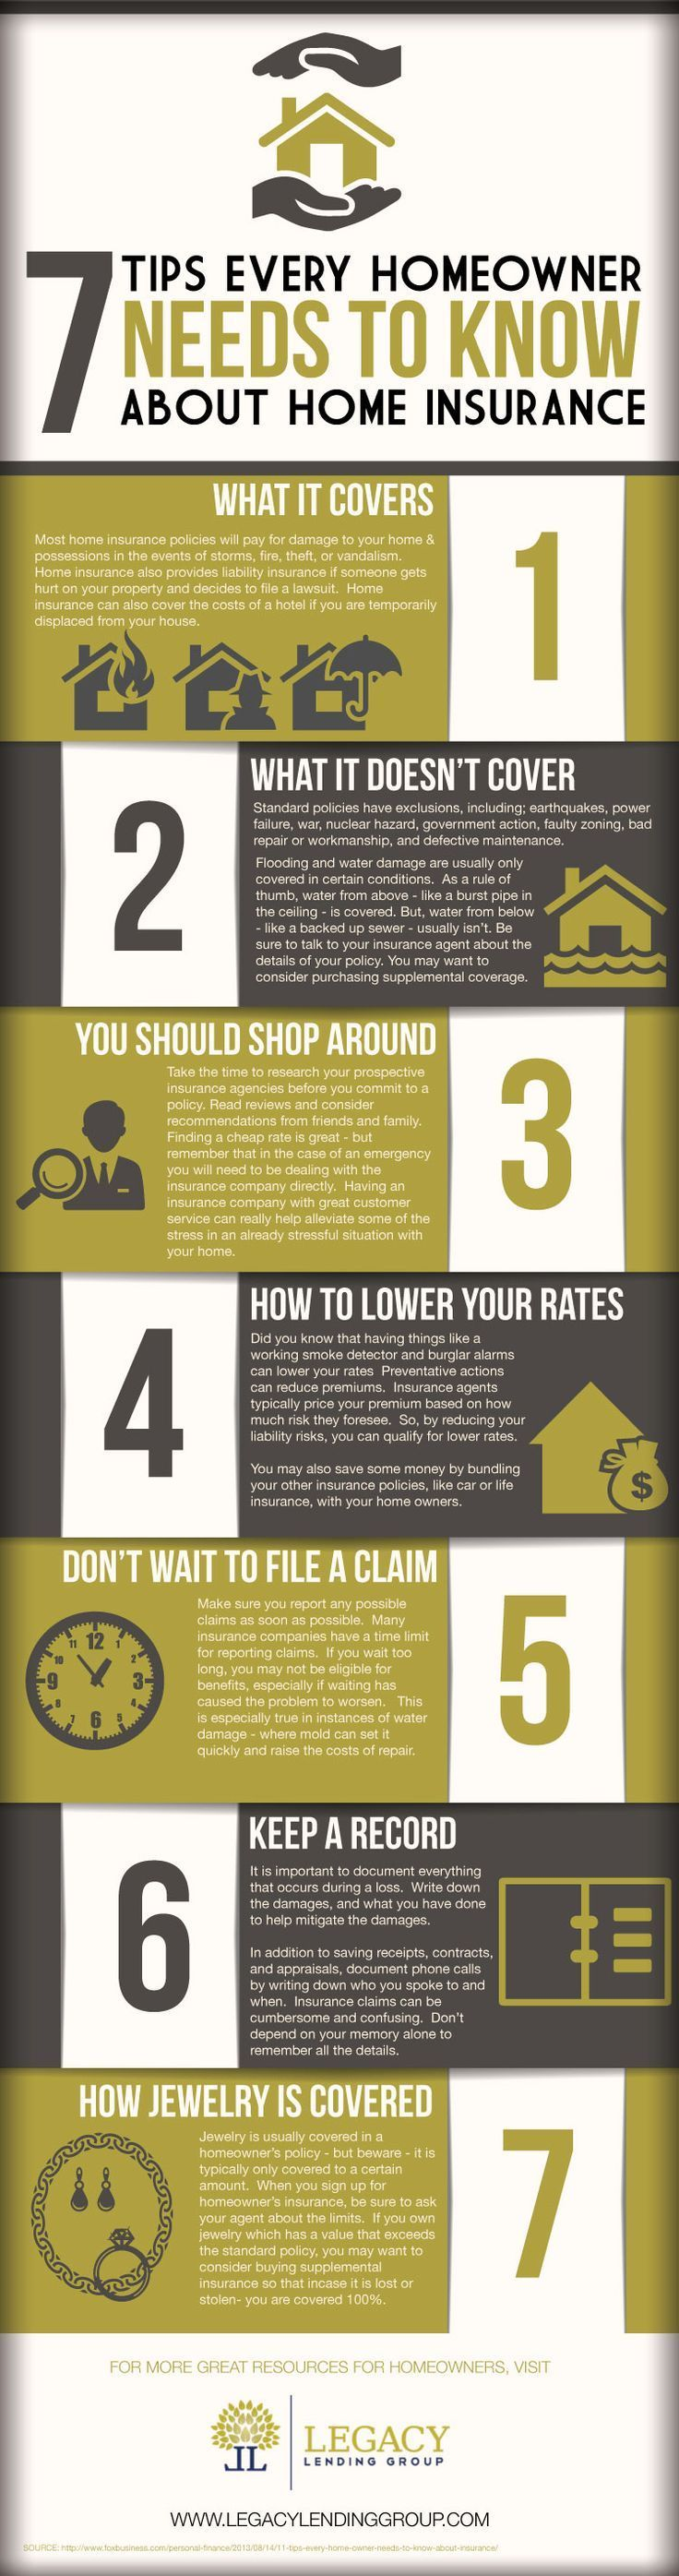 Homeowner Tips About Home Insurance By Www Integrityinsu